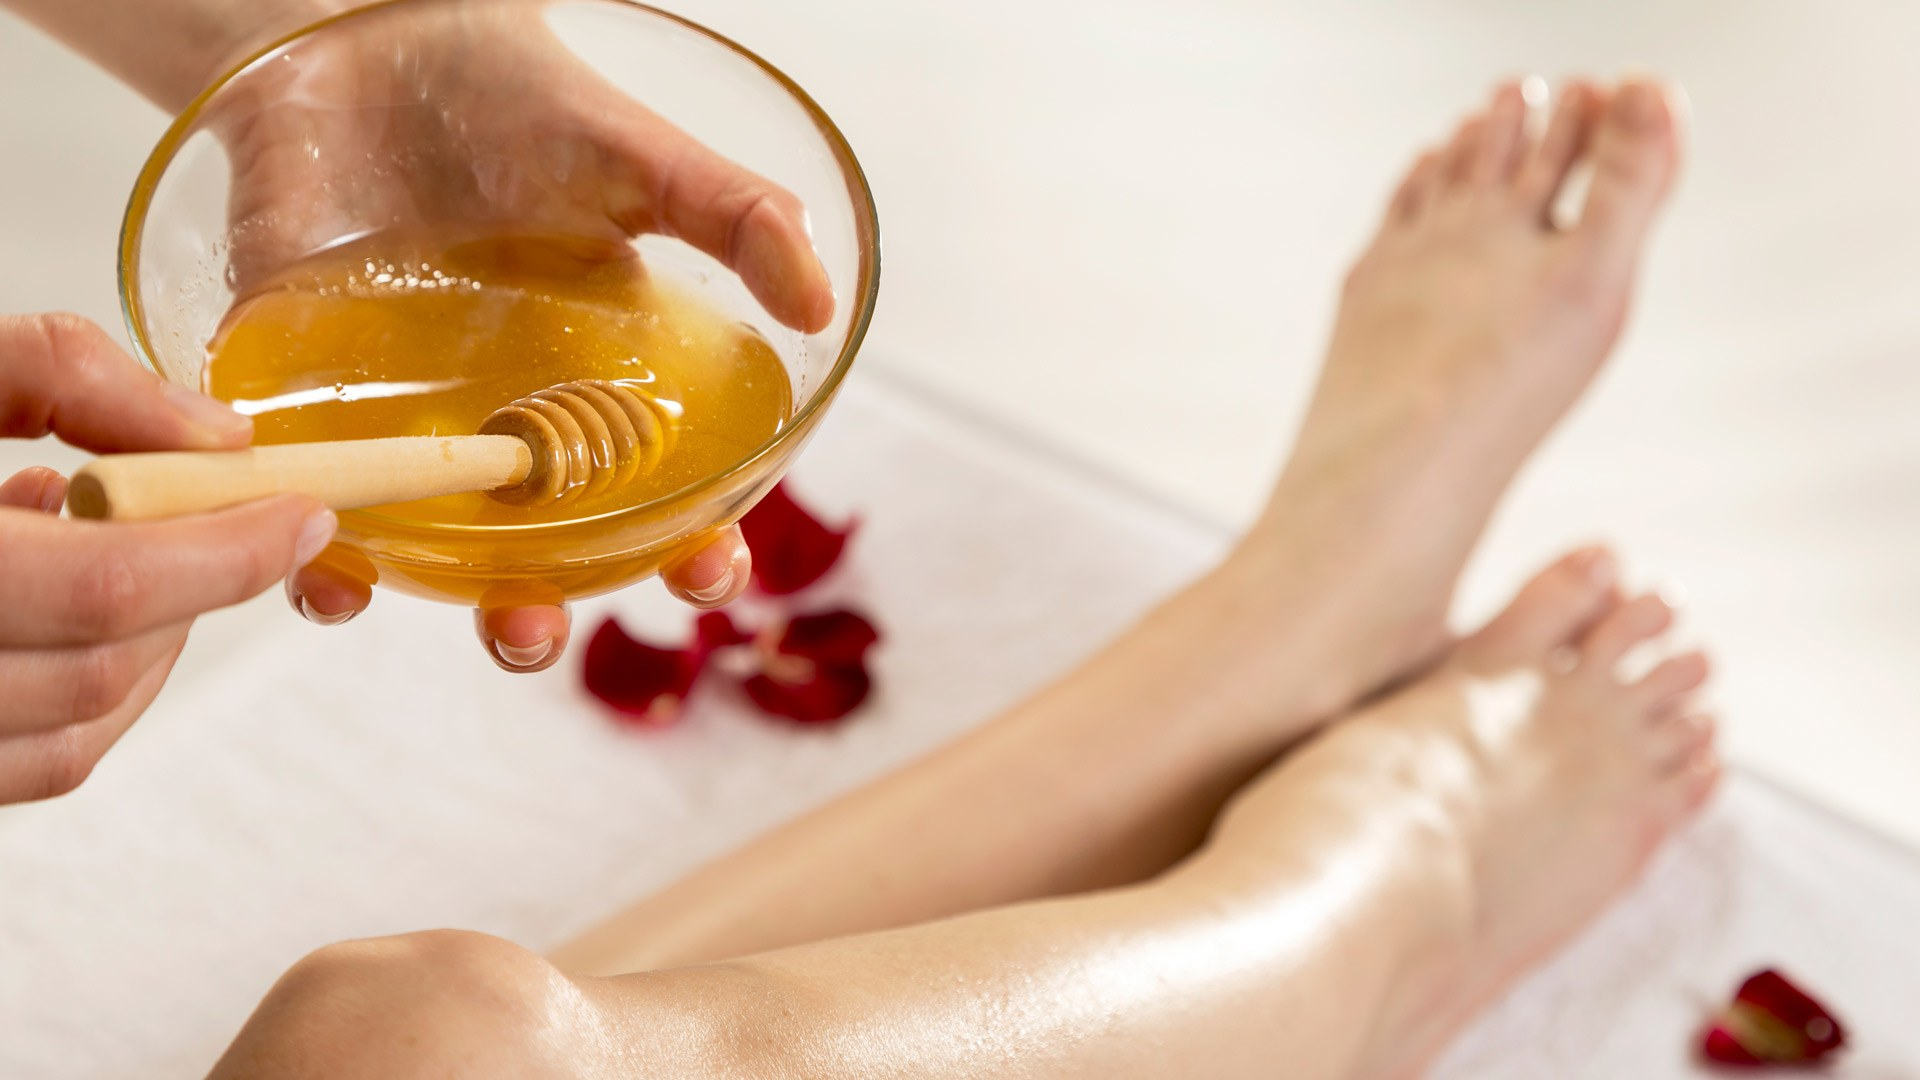 Bikini Waxing Questions You Should Always Ask